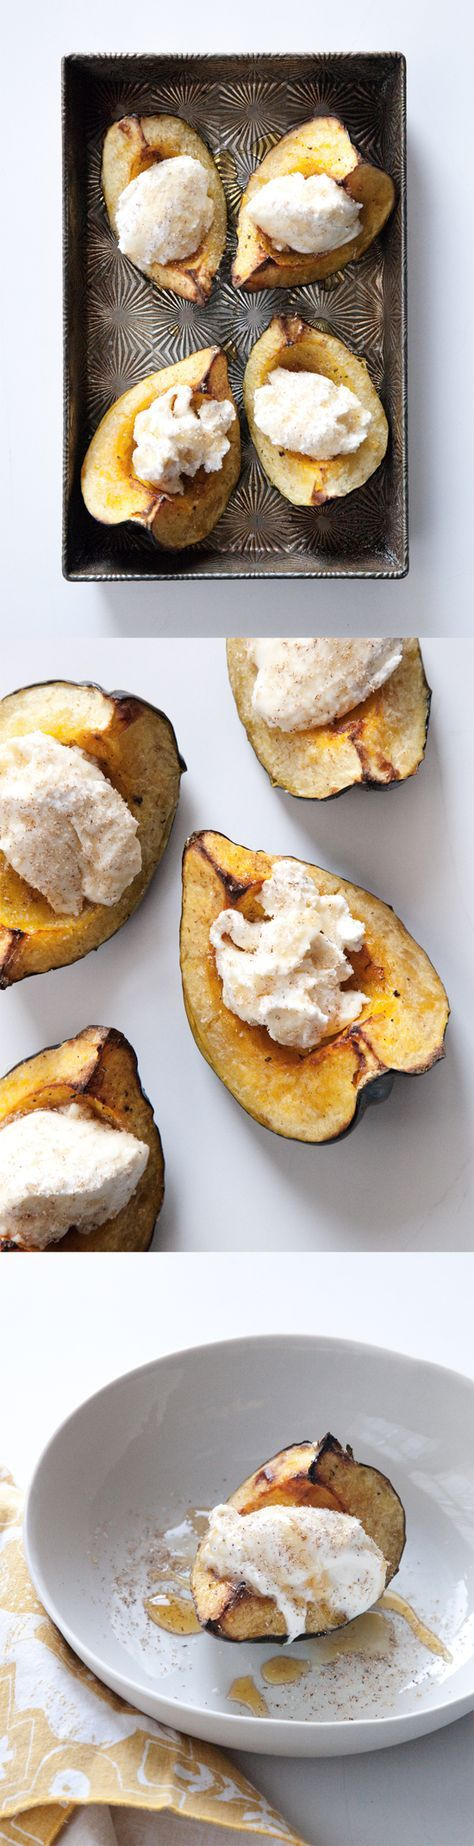 Roasted acorn squash with ricotta and honey. Three things I have in my house right now!